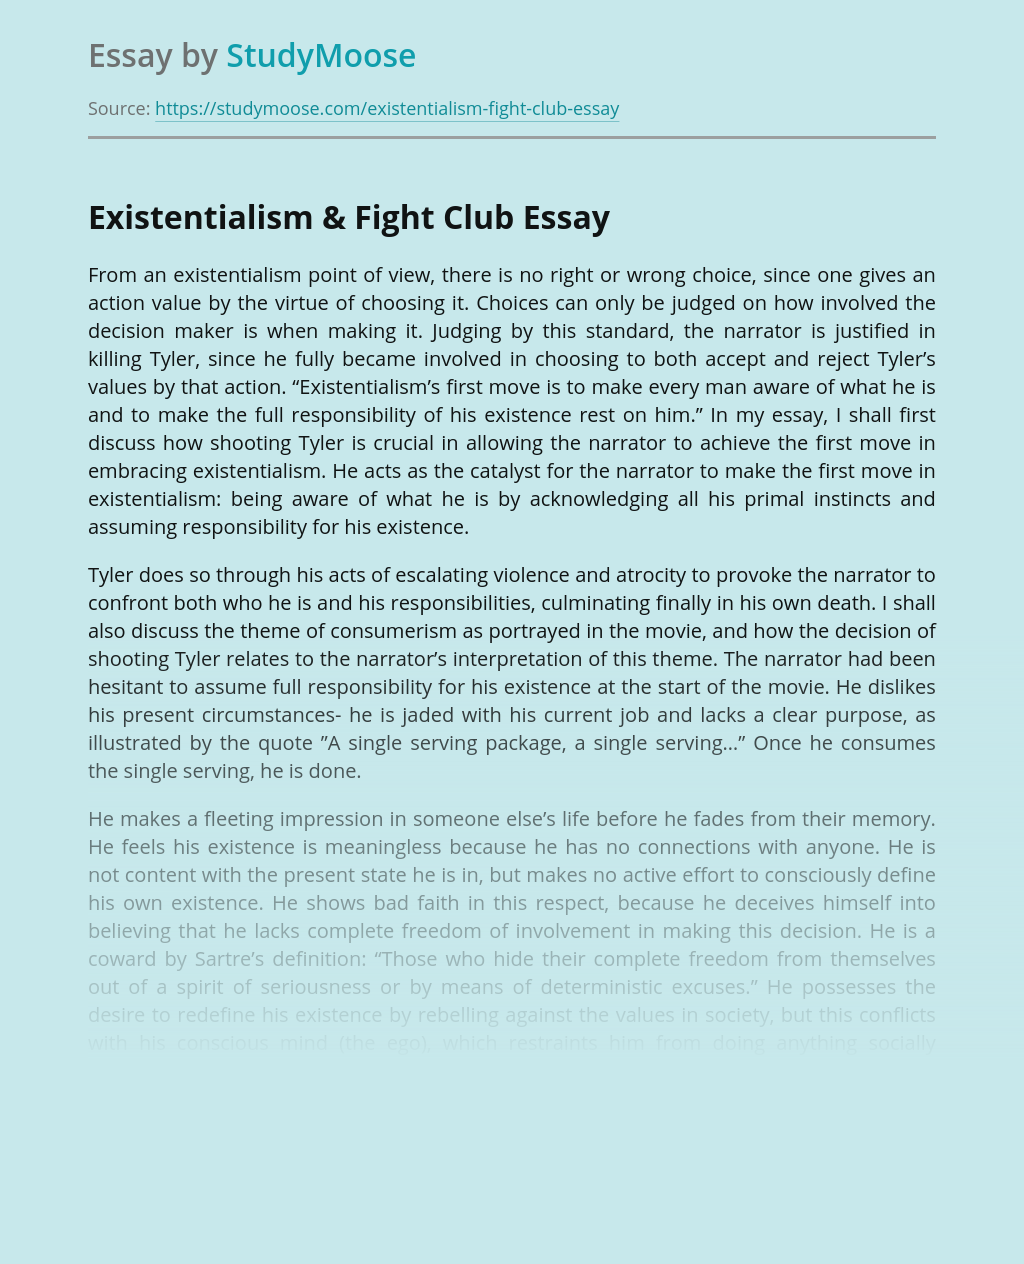 Existentialism & Fight Club